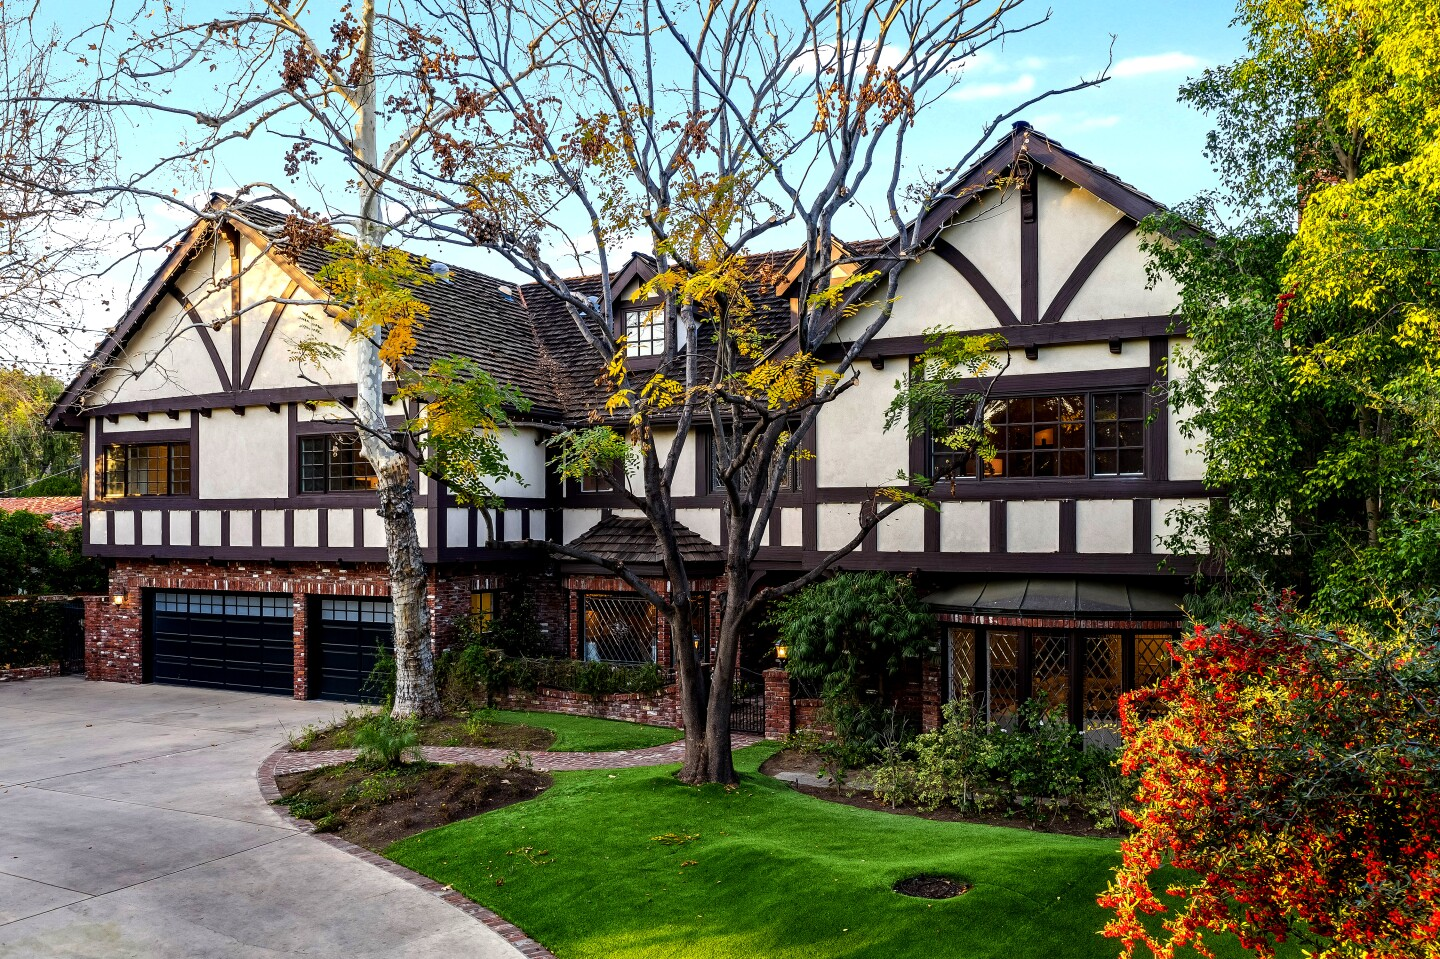 """Criminal Minds"" star Joe Mantegna is asking $4.195 million for his Tudor-style home in Toluca Lake. Owned by the actor for nearly three decades, the two-story house features exposed brickwork, half-timbering and leaded glass windows. A great room with beamed ceilings holds a pub-style bar, billiards area and screening room."